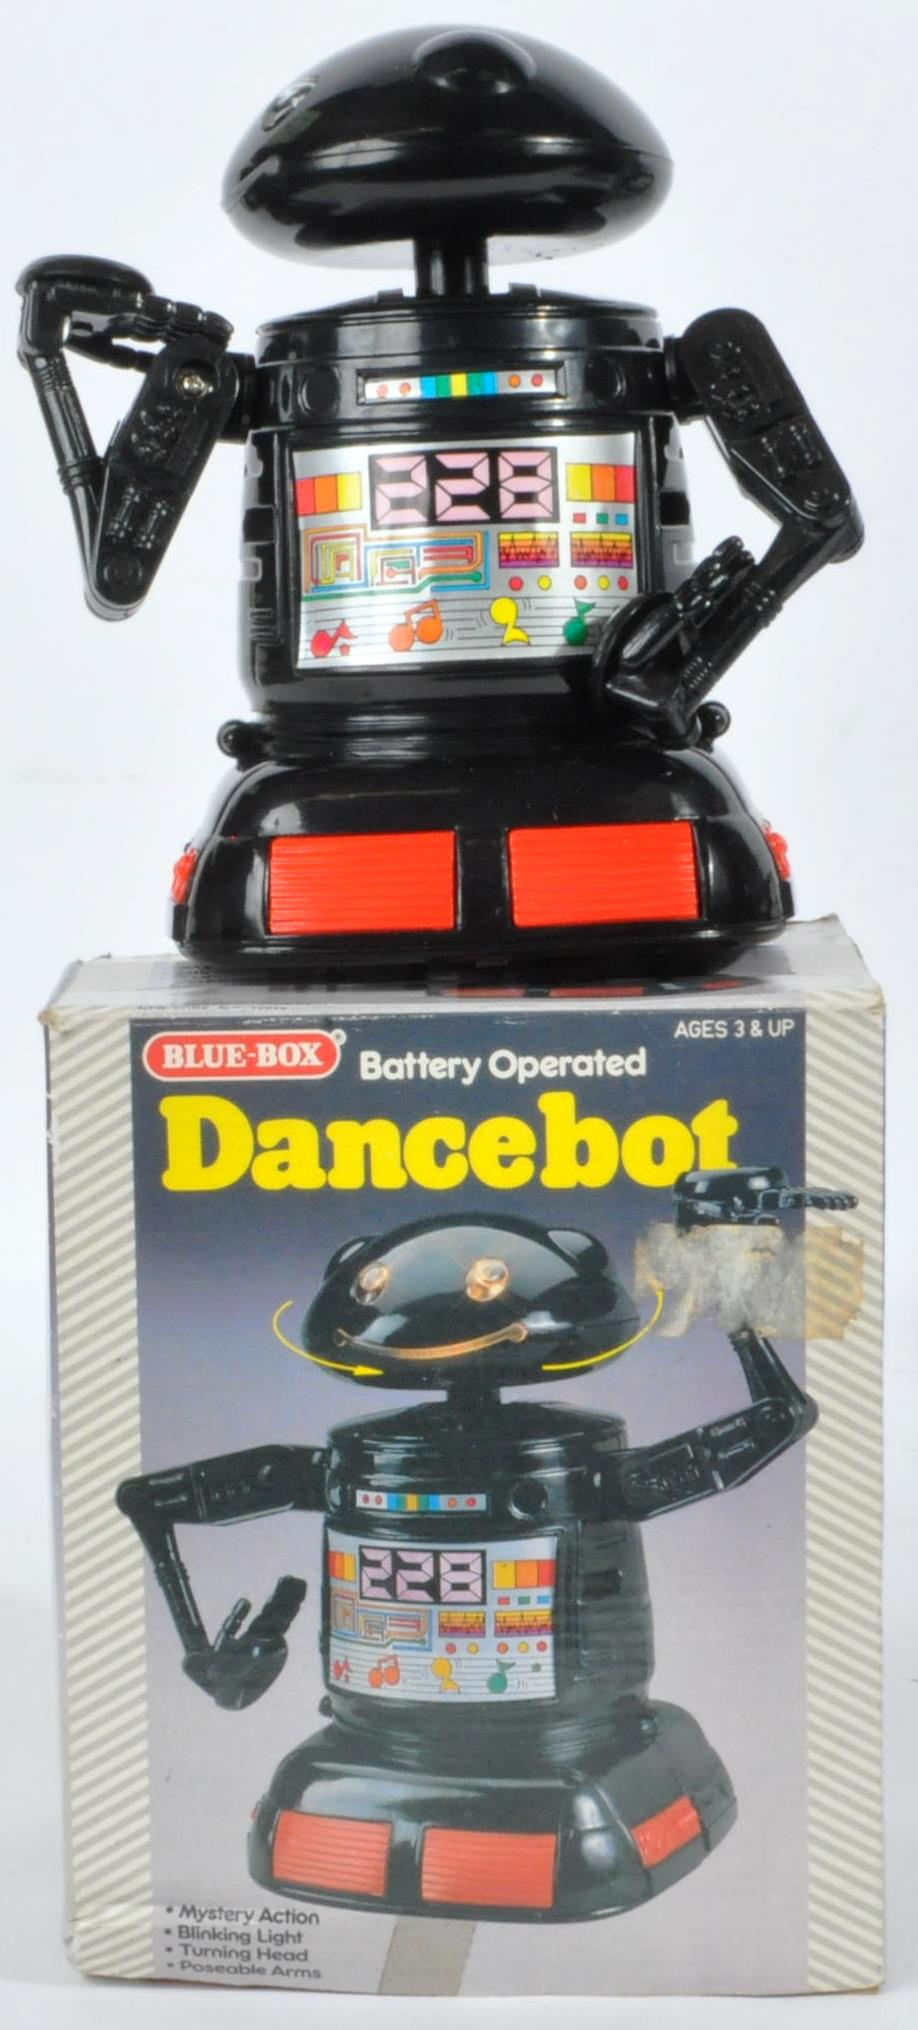 COLLECTION OF ASSORTED VINTAGE ELECTRONIC TOYS AND GAMES - Image 3 of 7